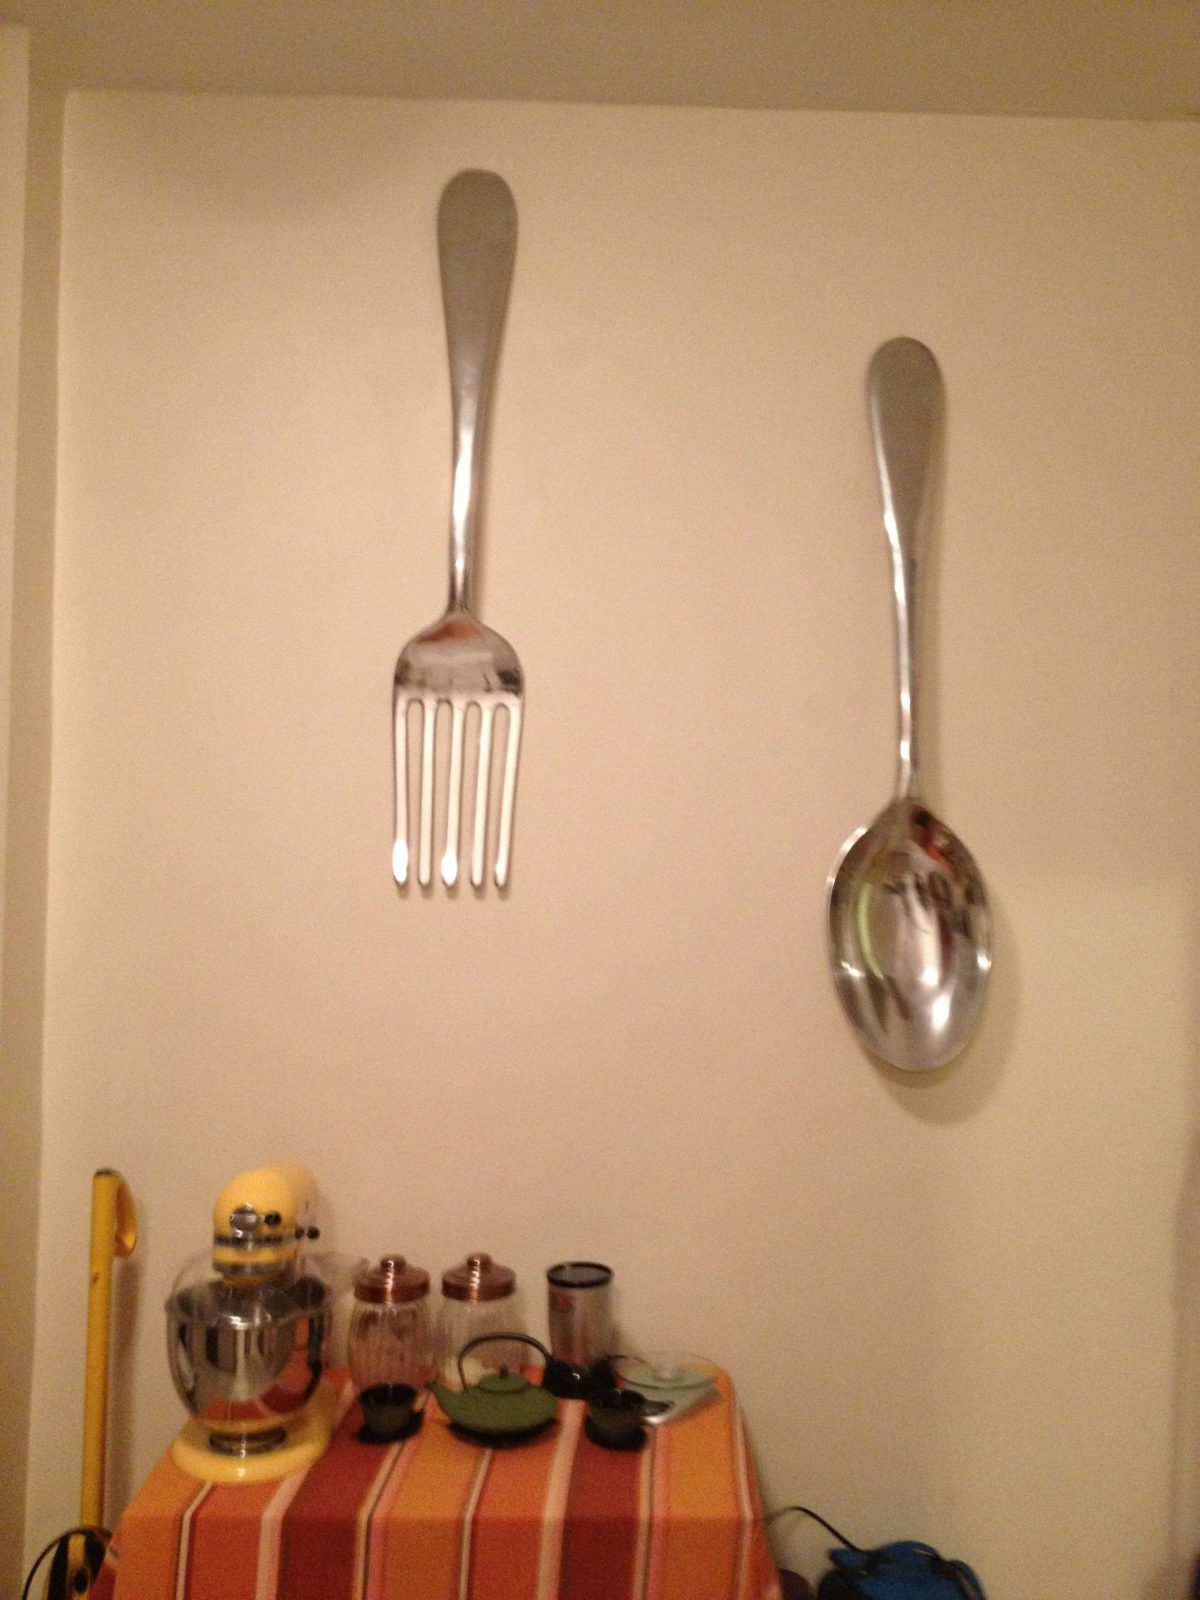 Big Spoon And Fork Wall Decor Best Of Giant Fork And Spoon Wall Art von Large Fork And Spoon Bild